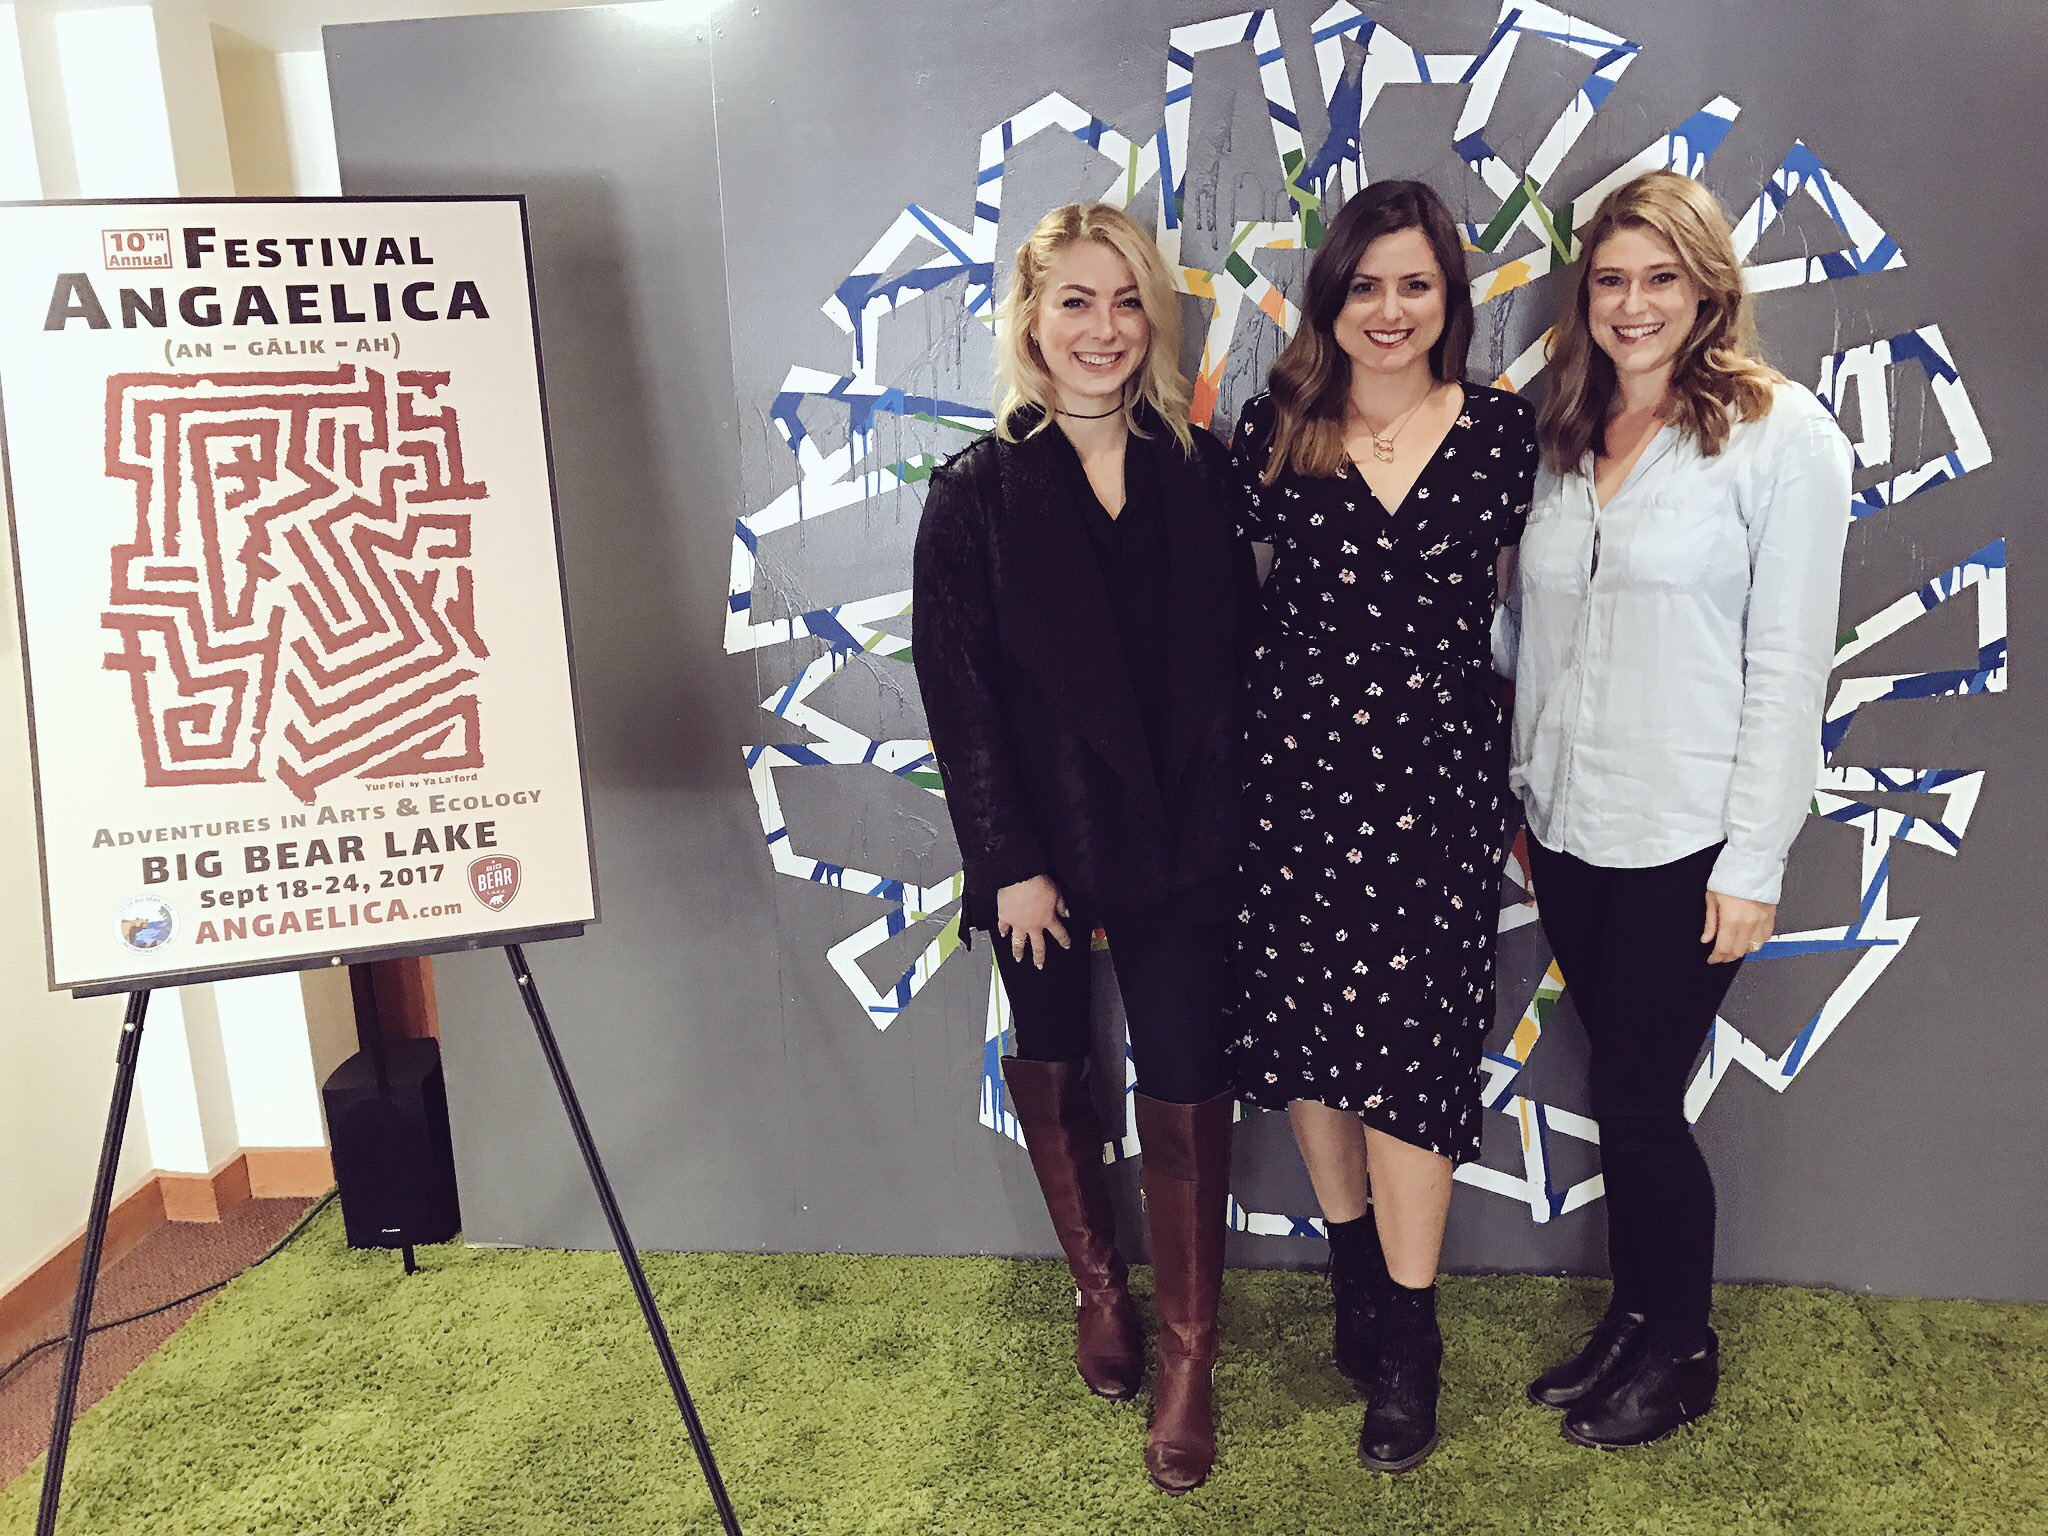 Girl Code team at Festival Angaelica - From Left: Kate, Casey, Jessica